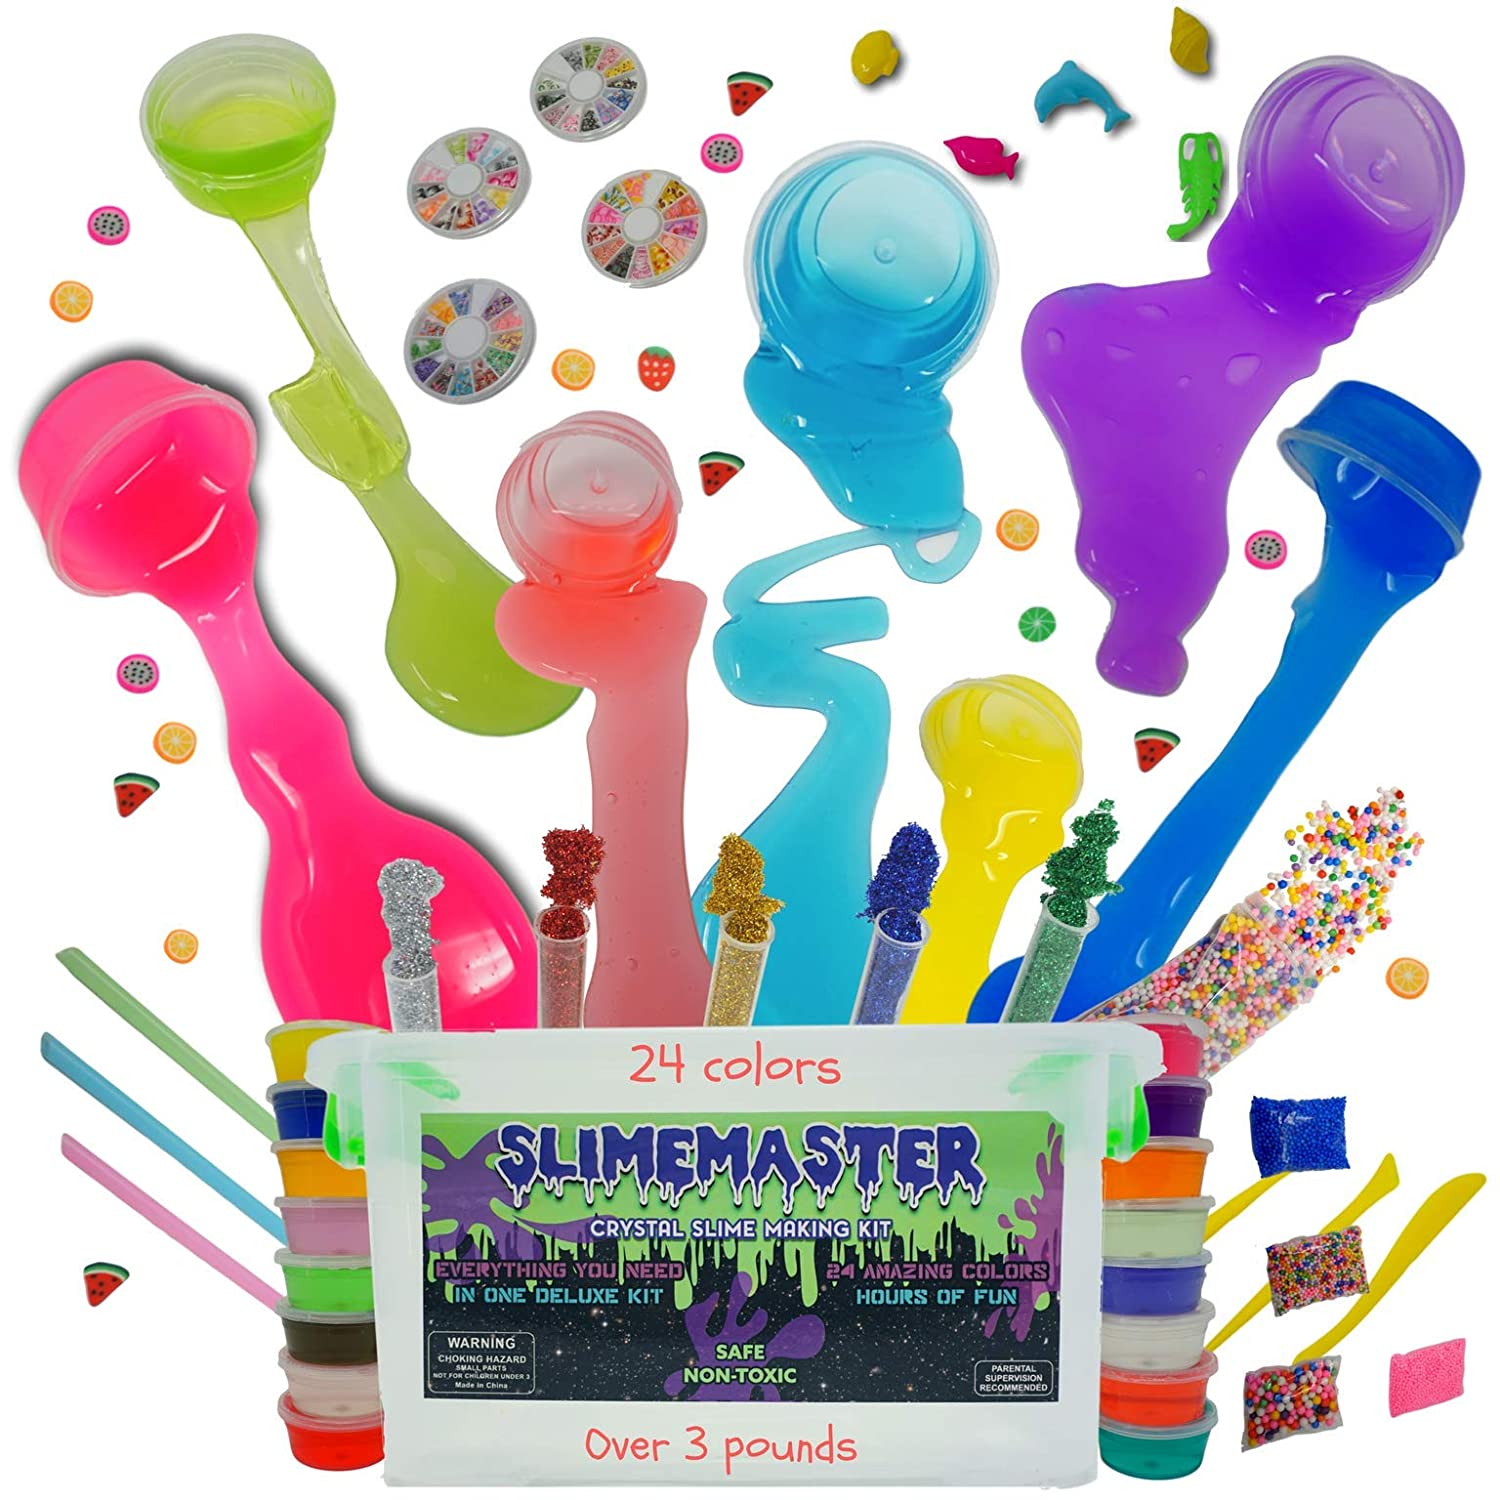 DIY Crystal Slime Making Kit - Super Slime in 24 Colors - Big Kids Craft Kit for Boys & Girls - Supplies Include Foam Balls, Glitter Bottles, Wheel & Fruit Slice Decorations in Clear Container SLIMEMASTER